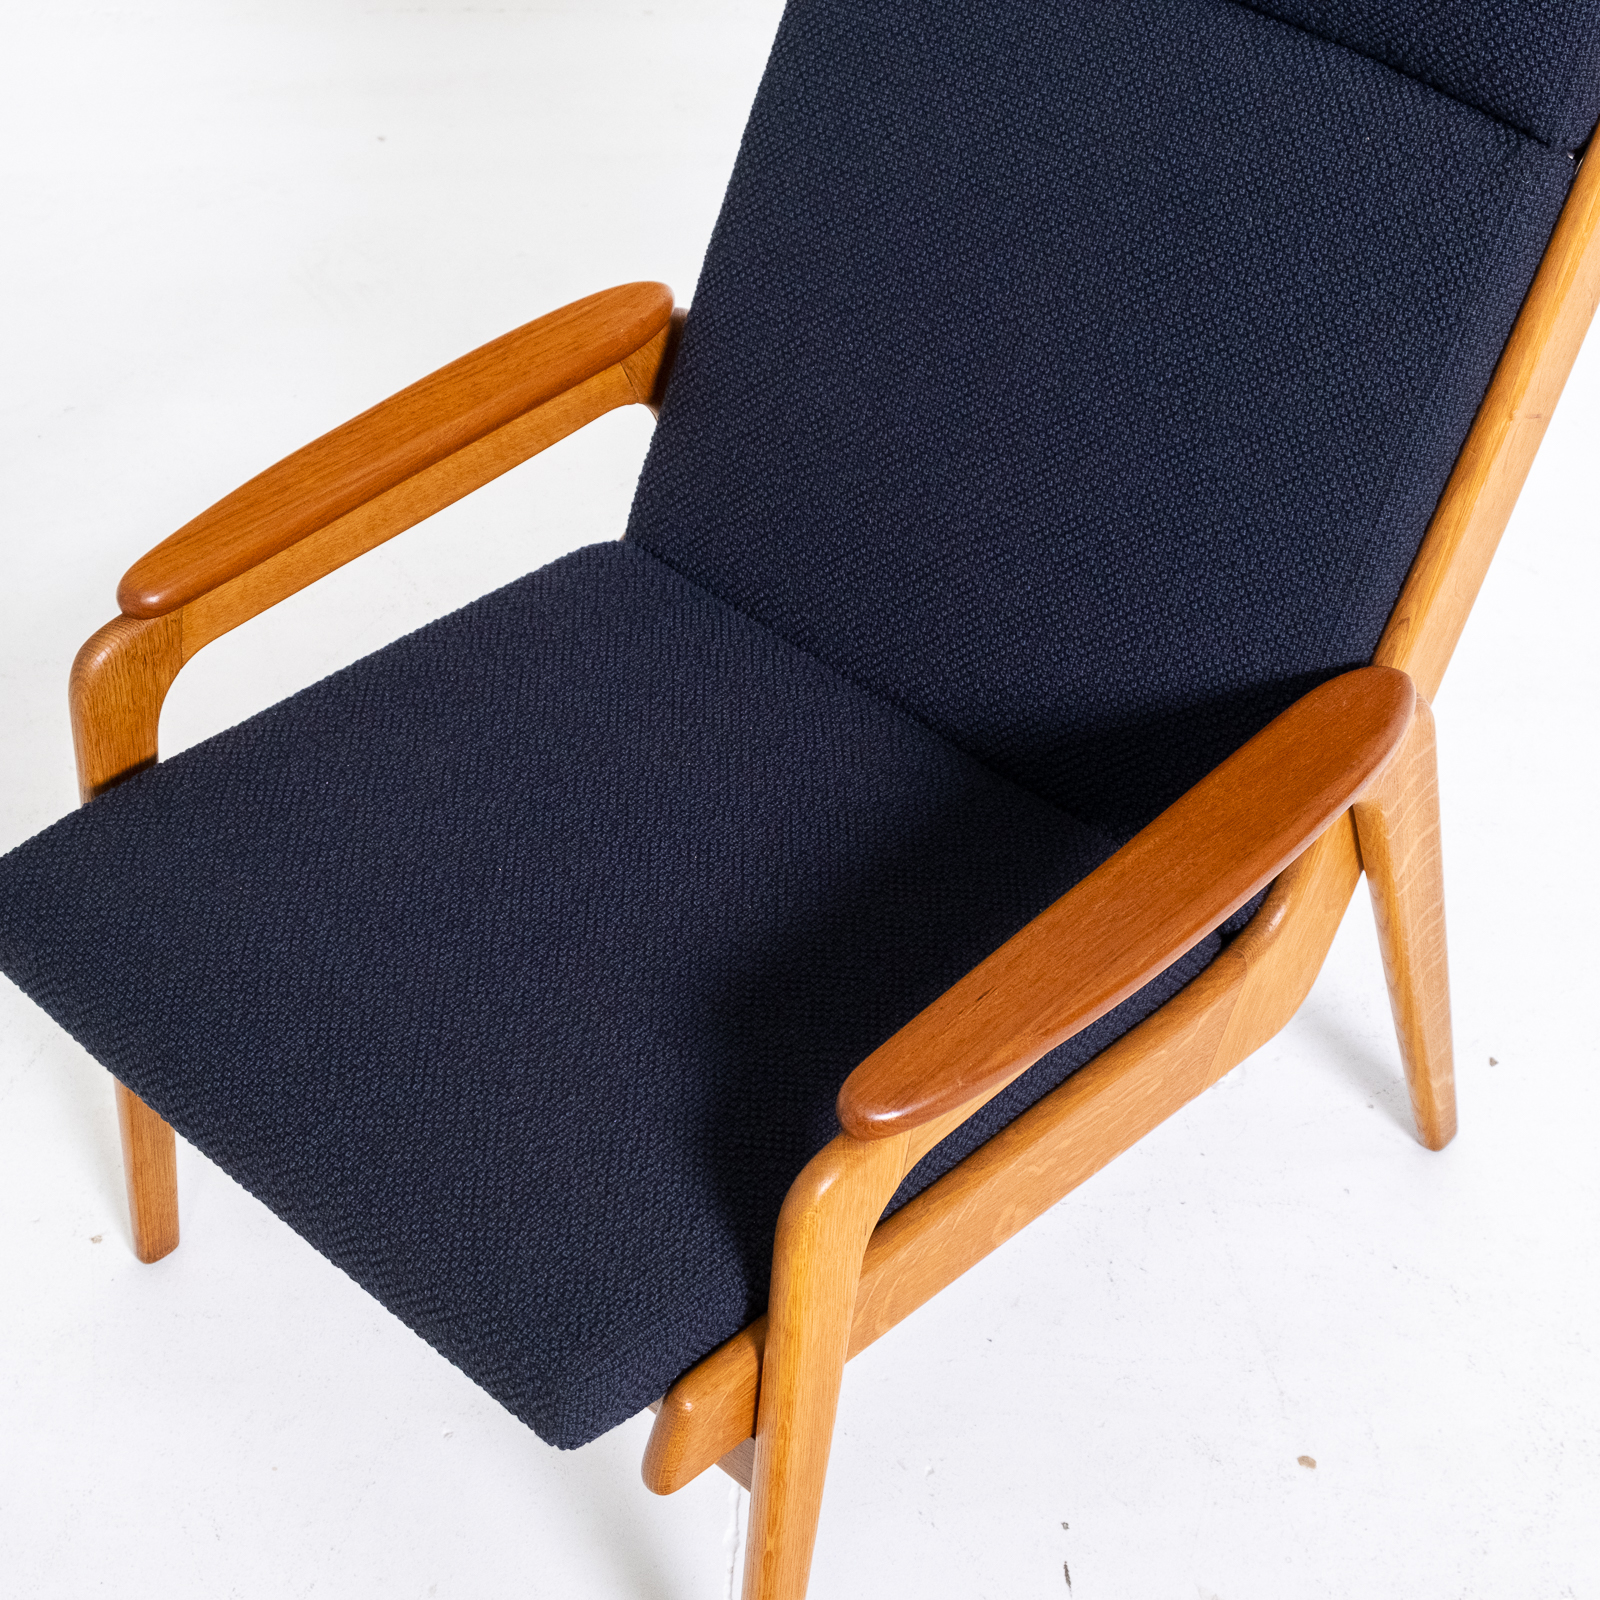 Lotus Armchair By Rob Parry For De Ster Gelderland, 1950s, The Netherlands 08